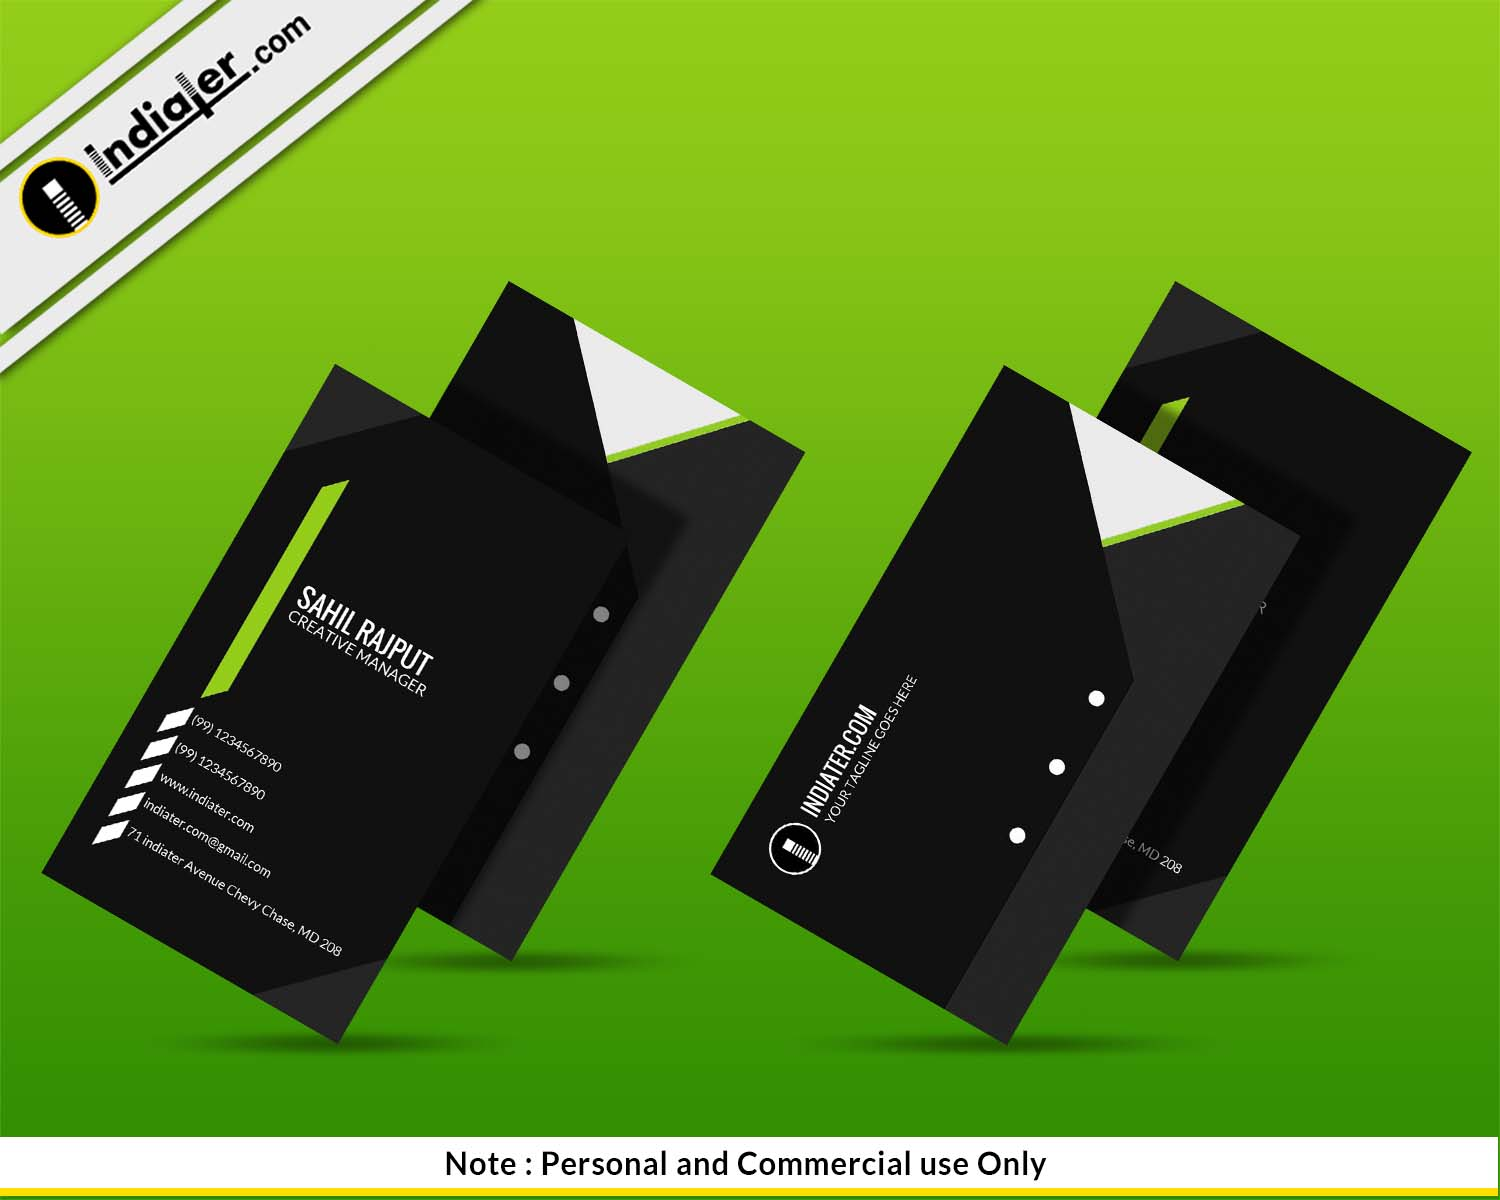 business card presentation template psd - free green premium business card psd template indiater